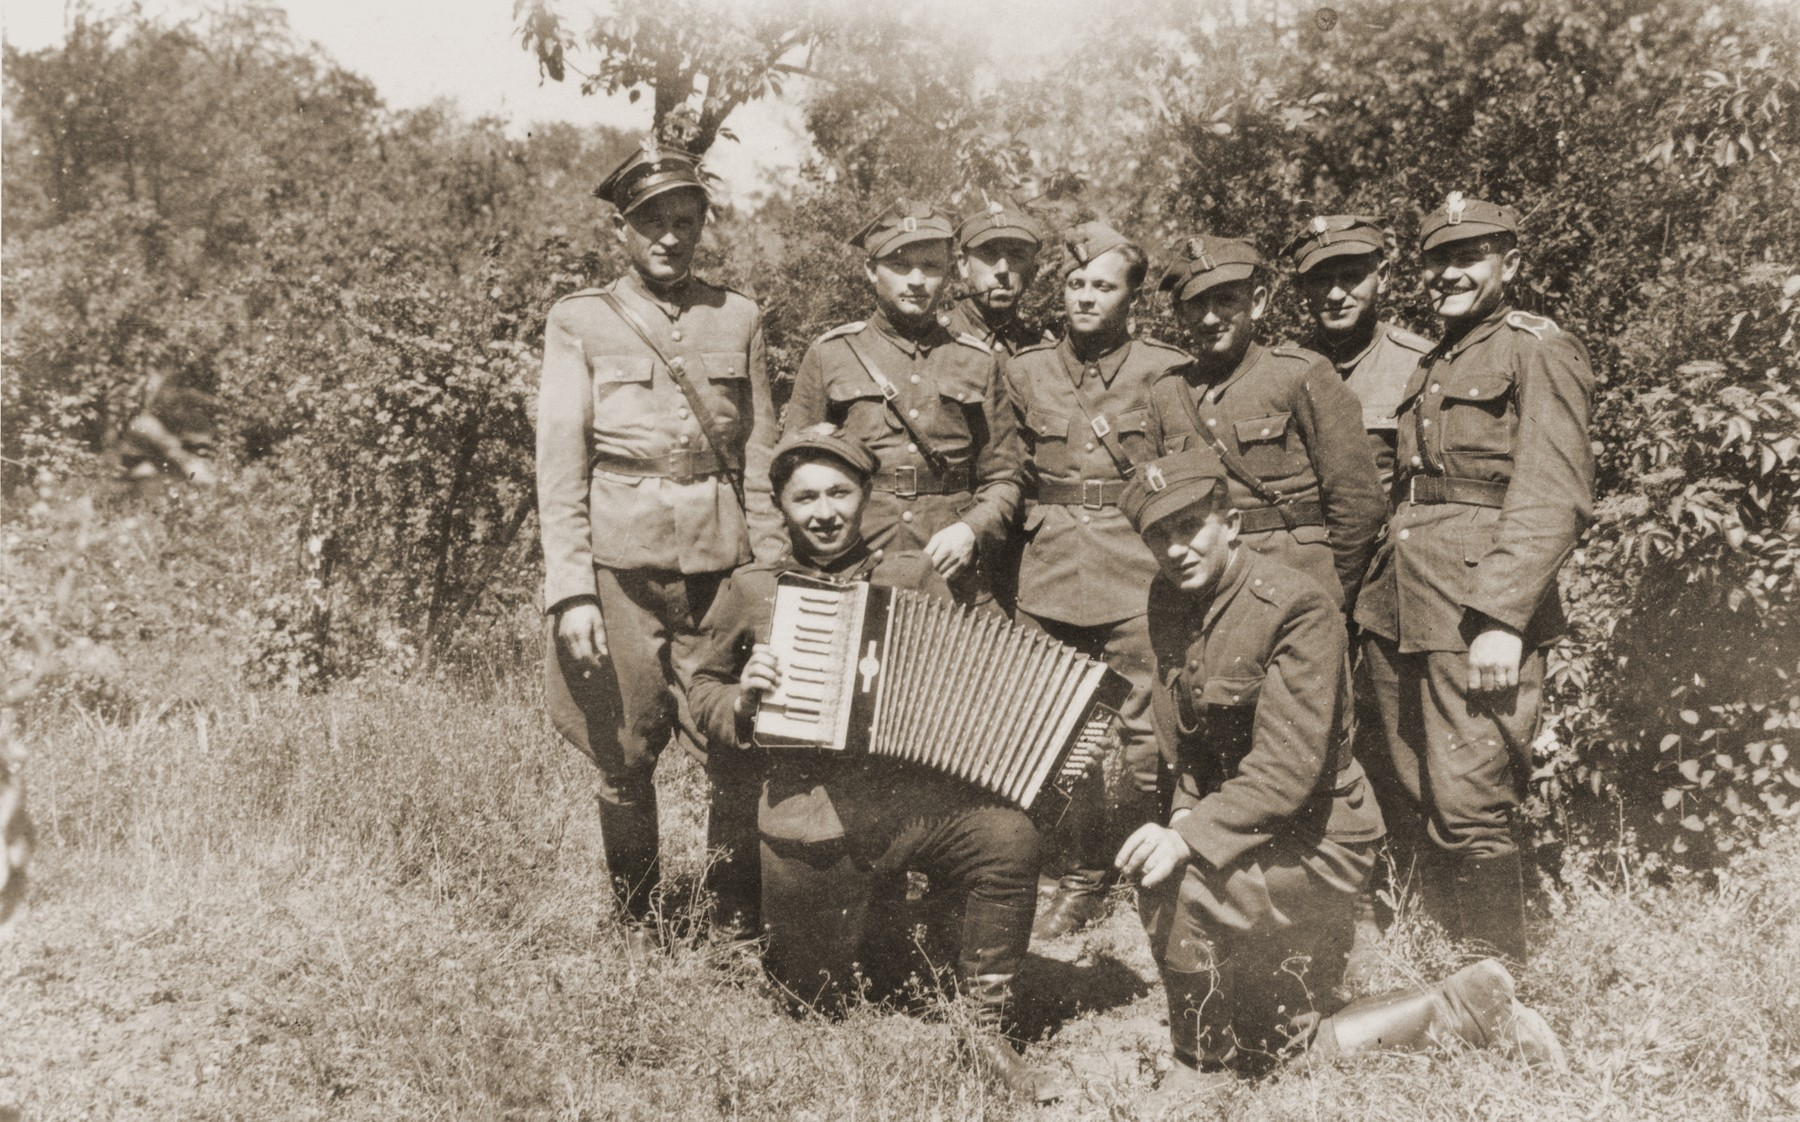 Group portrait of soldiers in the Polish Berling Army.   Among those pictured are two Jewish soldiers: Henryk Lanceter (standing third from the right) and Marian Kaufman (standing second from the left).